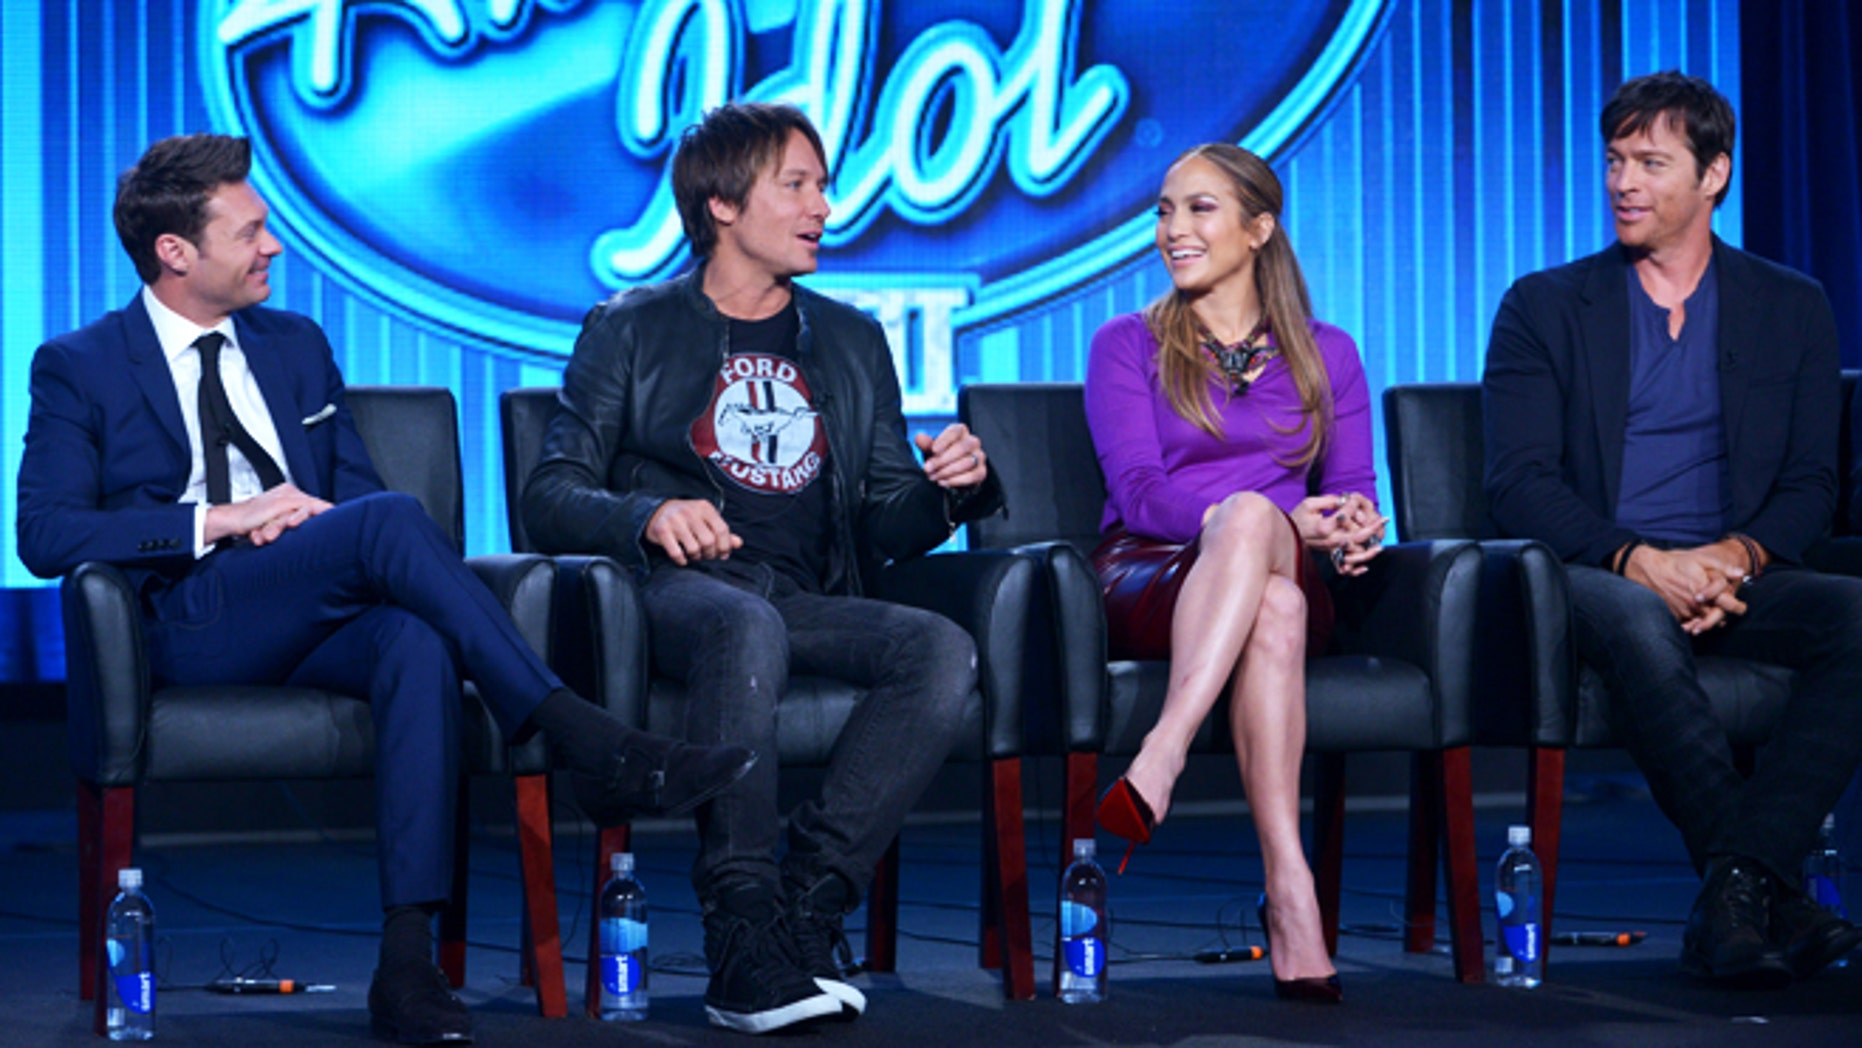 """From left, Host Ryan Seacrest, and Judges Keith Urban, Jennifer Lopez, and Harry Connick Jr. are seen during the panel of """"American Idol"""" at the FOX Winter 2014 TCA, on Monday, Jan. 13, 2014, at the Langham Hotel in Pasadena, Calif. (Photo by Richard Shotwell/Invision/AP)"""